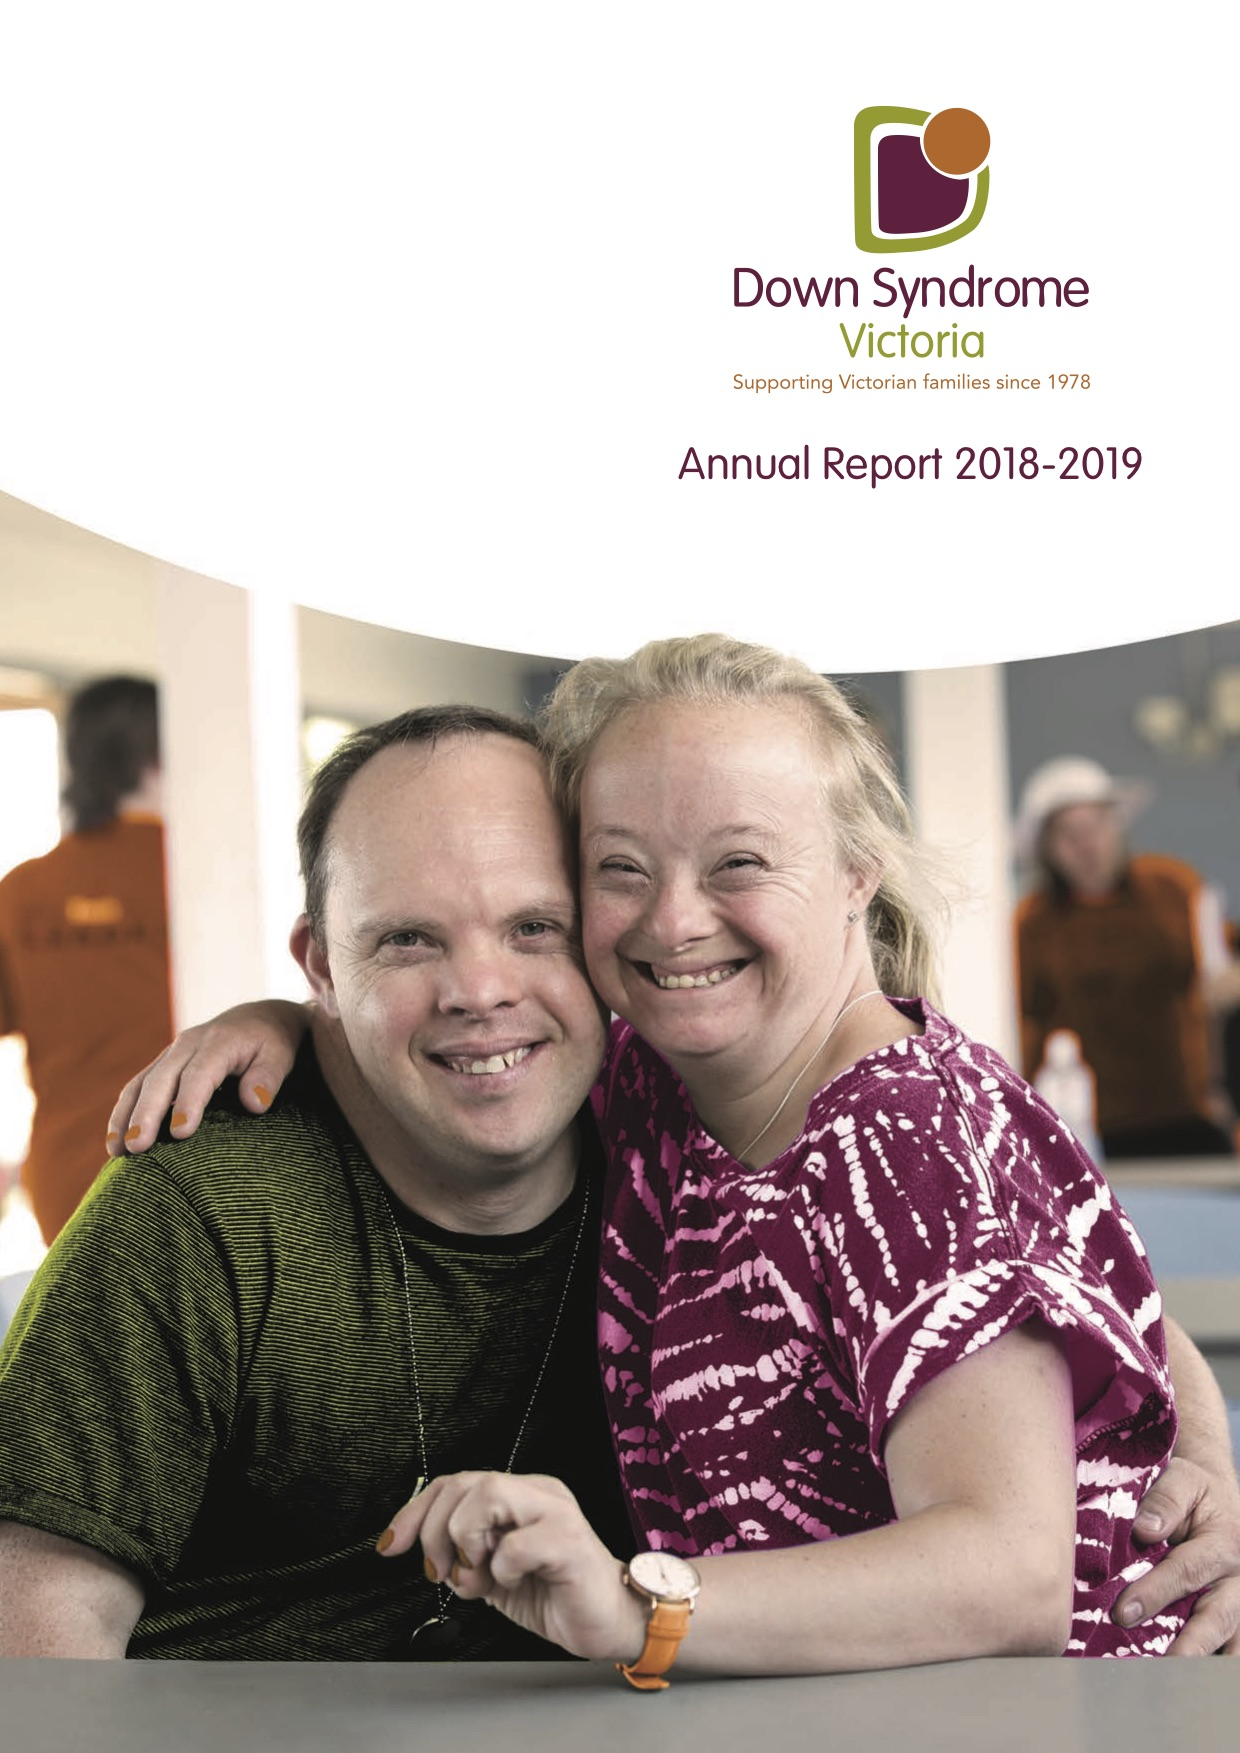 Down Syndrome Victoria Annual Report 2018 to 2019